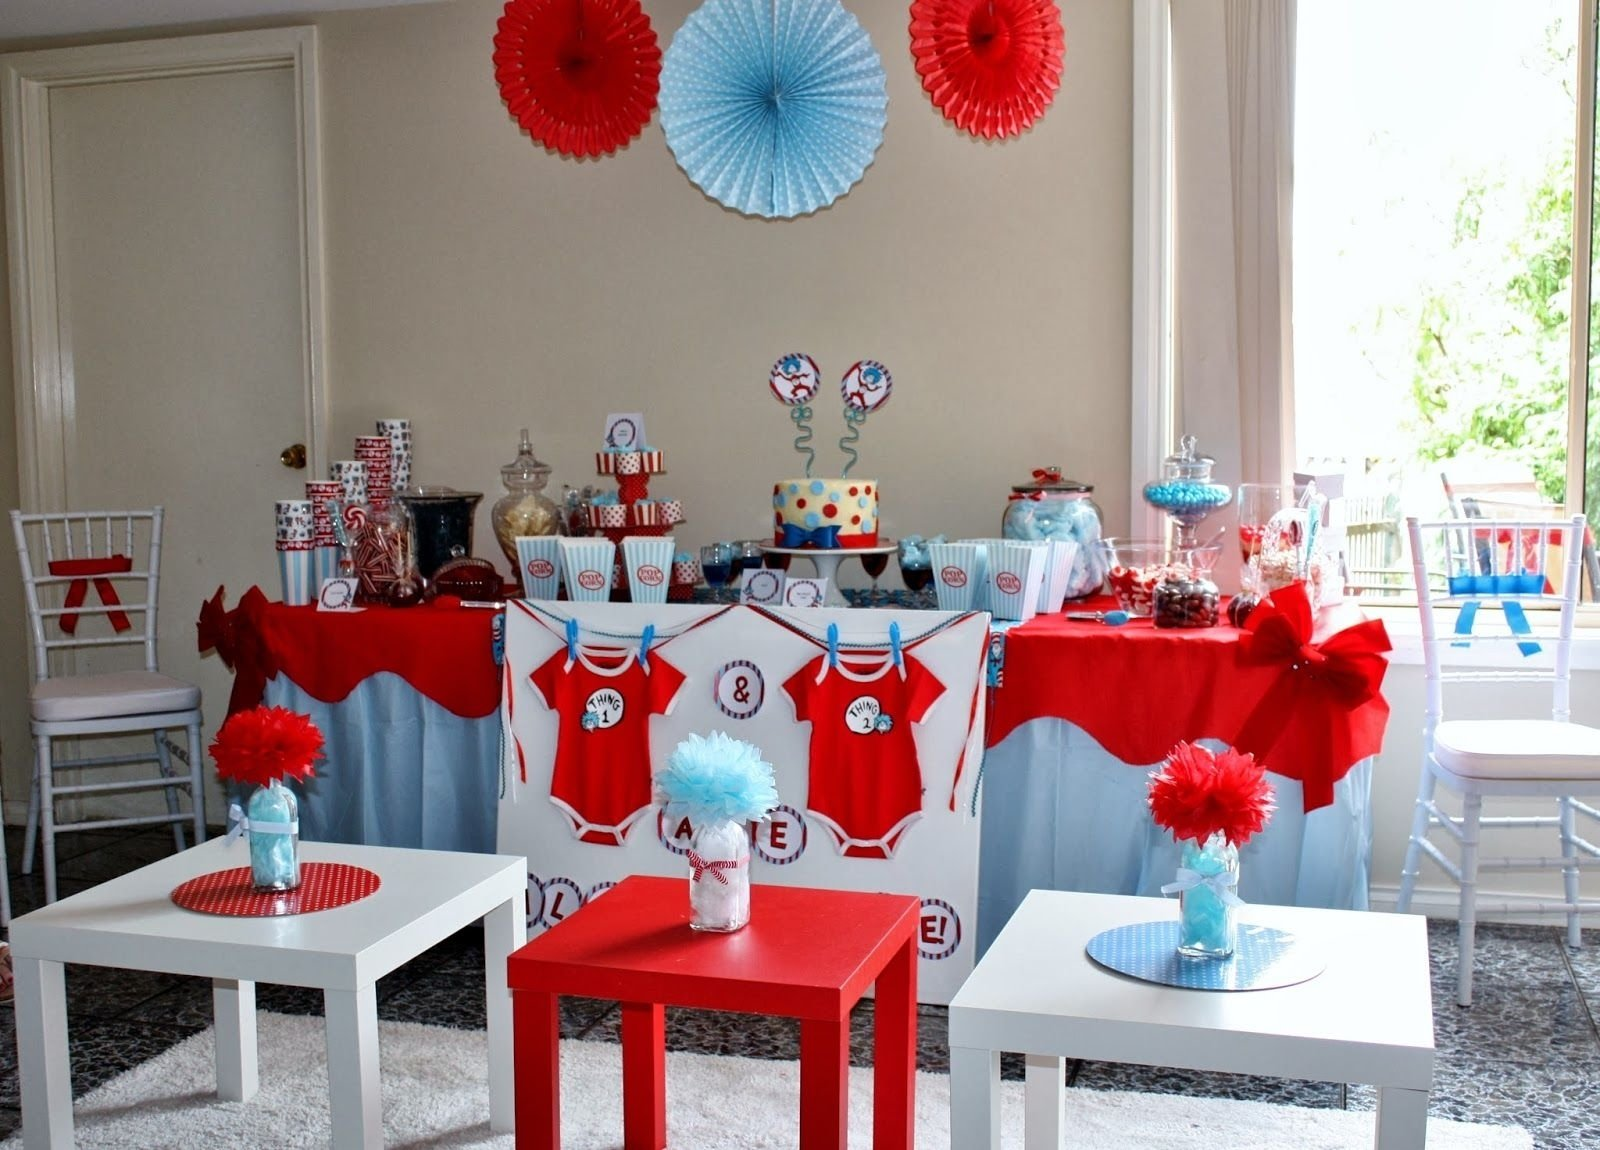 10 Fantastic Thing 1 And Thing 2 Baby Shower Ideas party of 11 tempting fate a thing 1 and thing 2 baby shower baby 2021